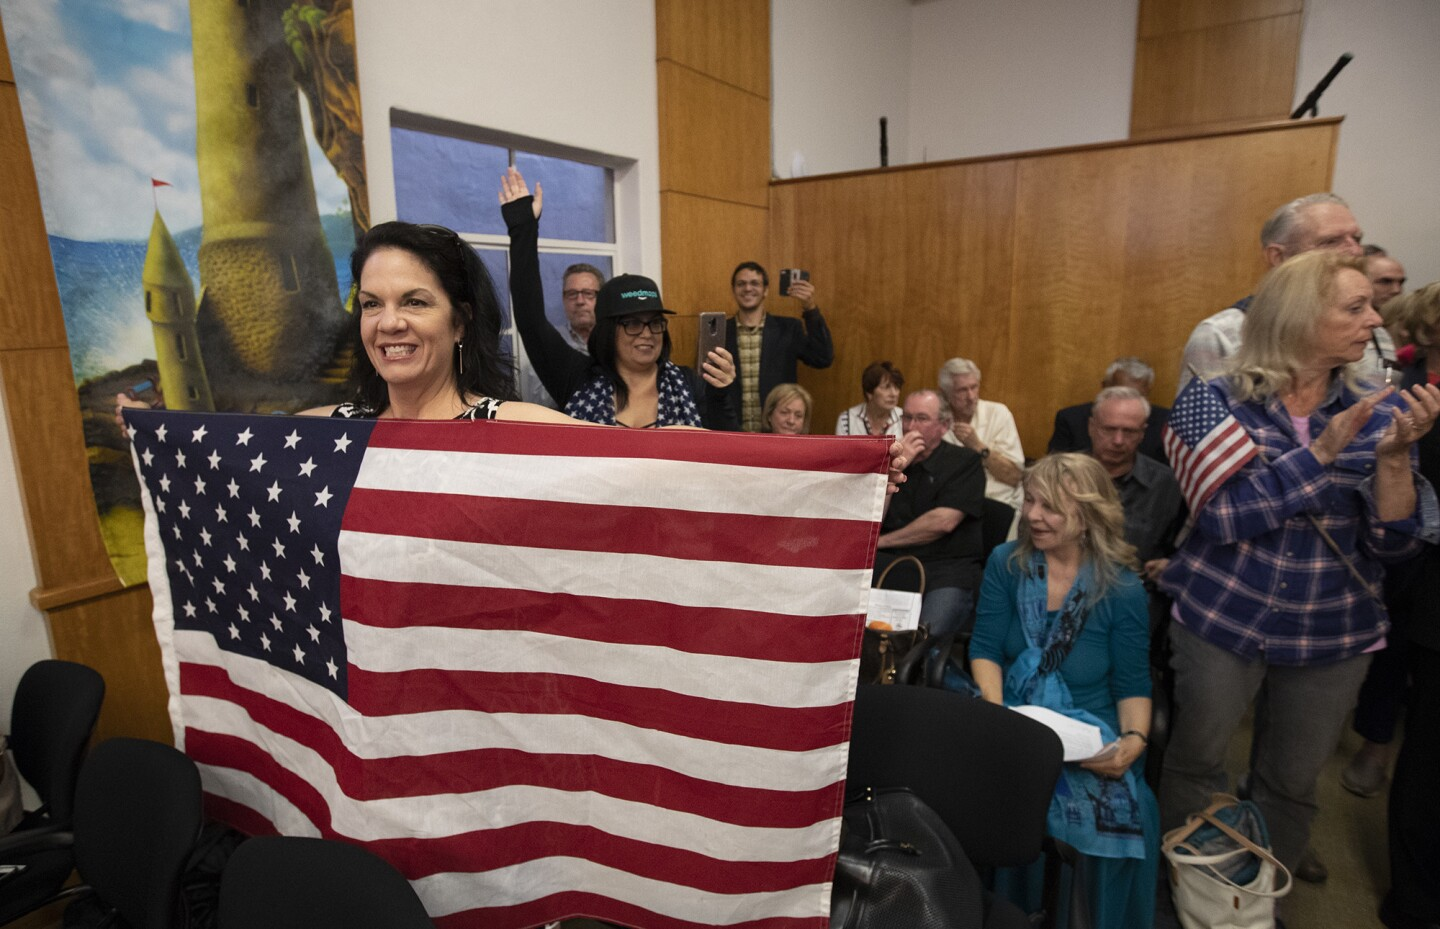 Lisa Collins holds an American flag during a Laguna Beach City Council meeting Tuesday in which the council considered the flag design on city police cars.